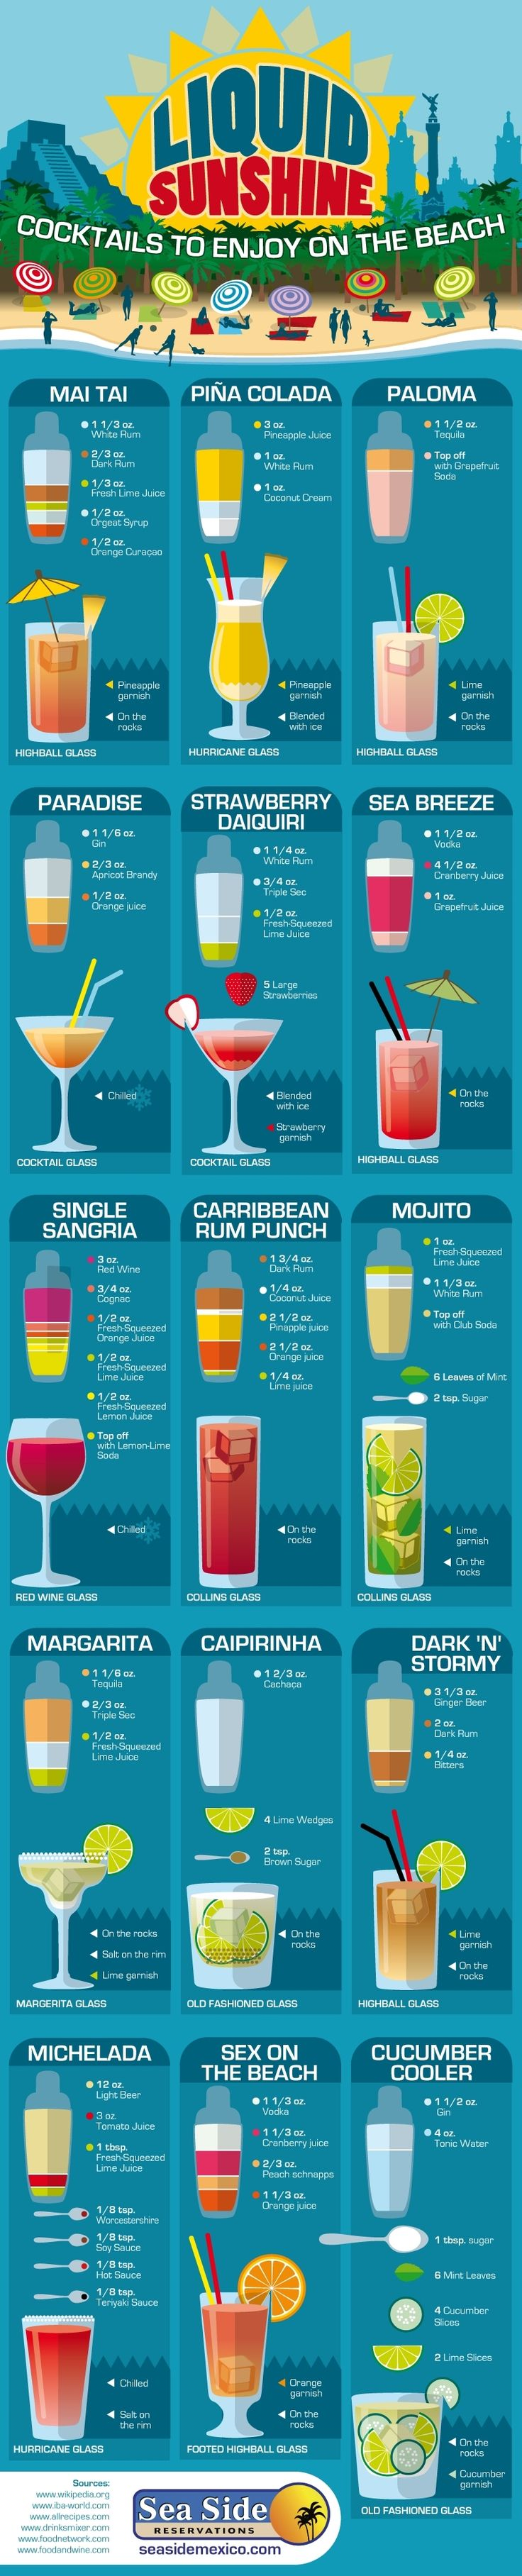 cocktails to enjoy on the beach - yum!